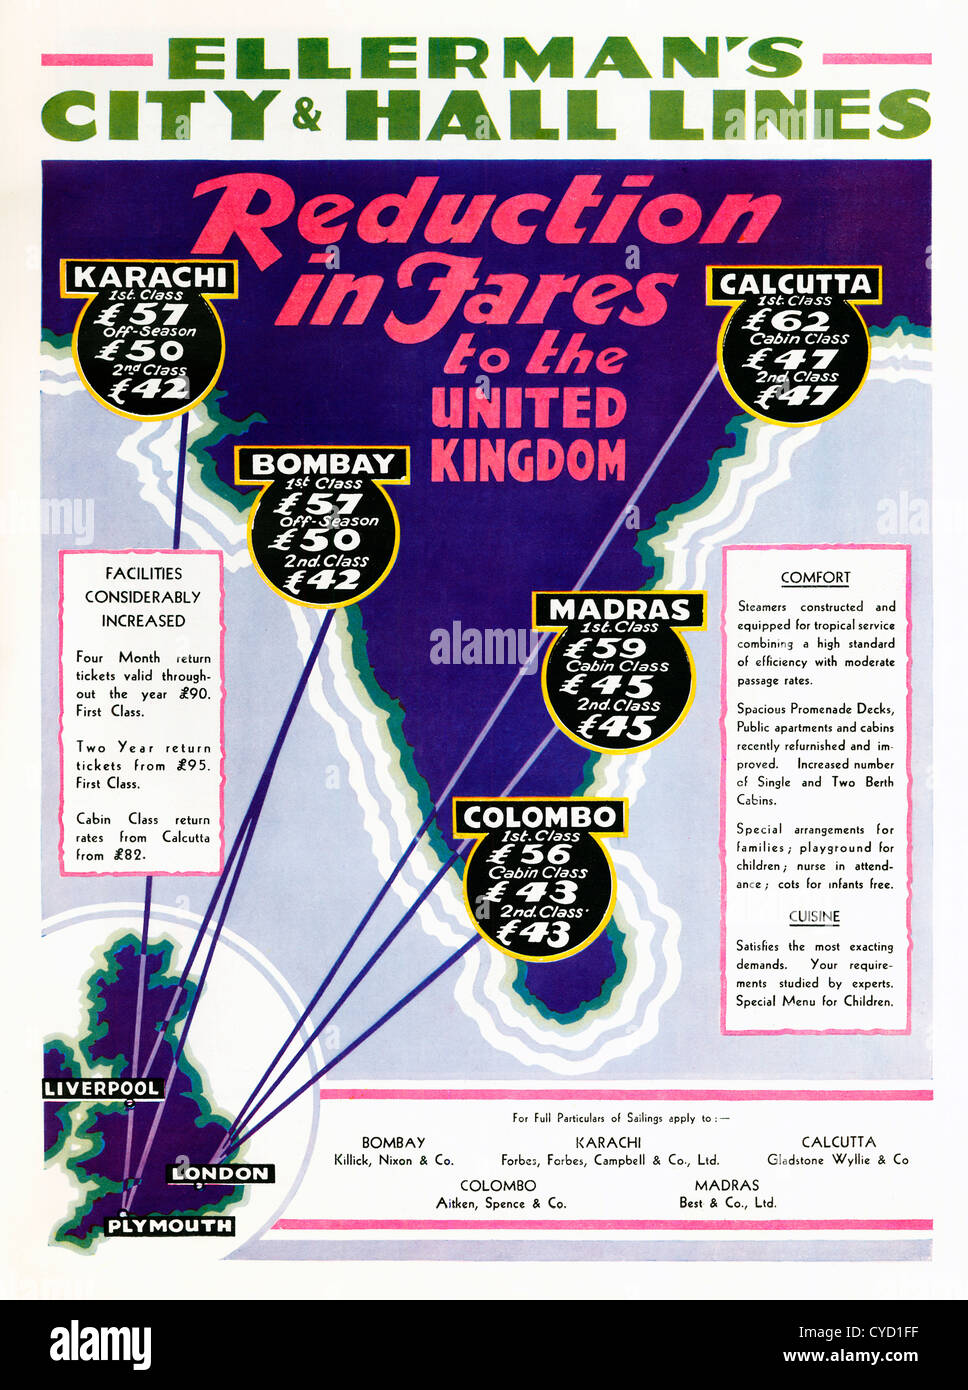 Ellermans City and Hall LInes, 1932 advert for the shipping line joining up the British Empire, here with cheaper - Stock Image